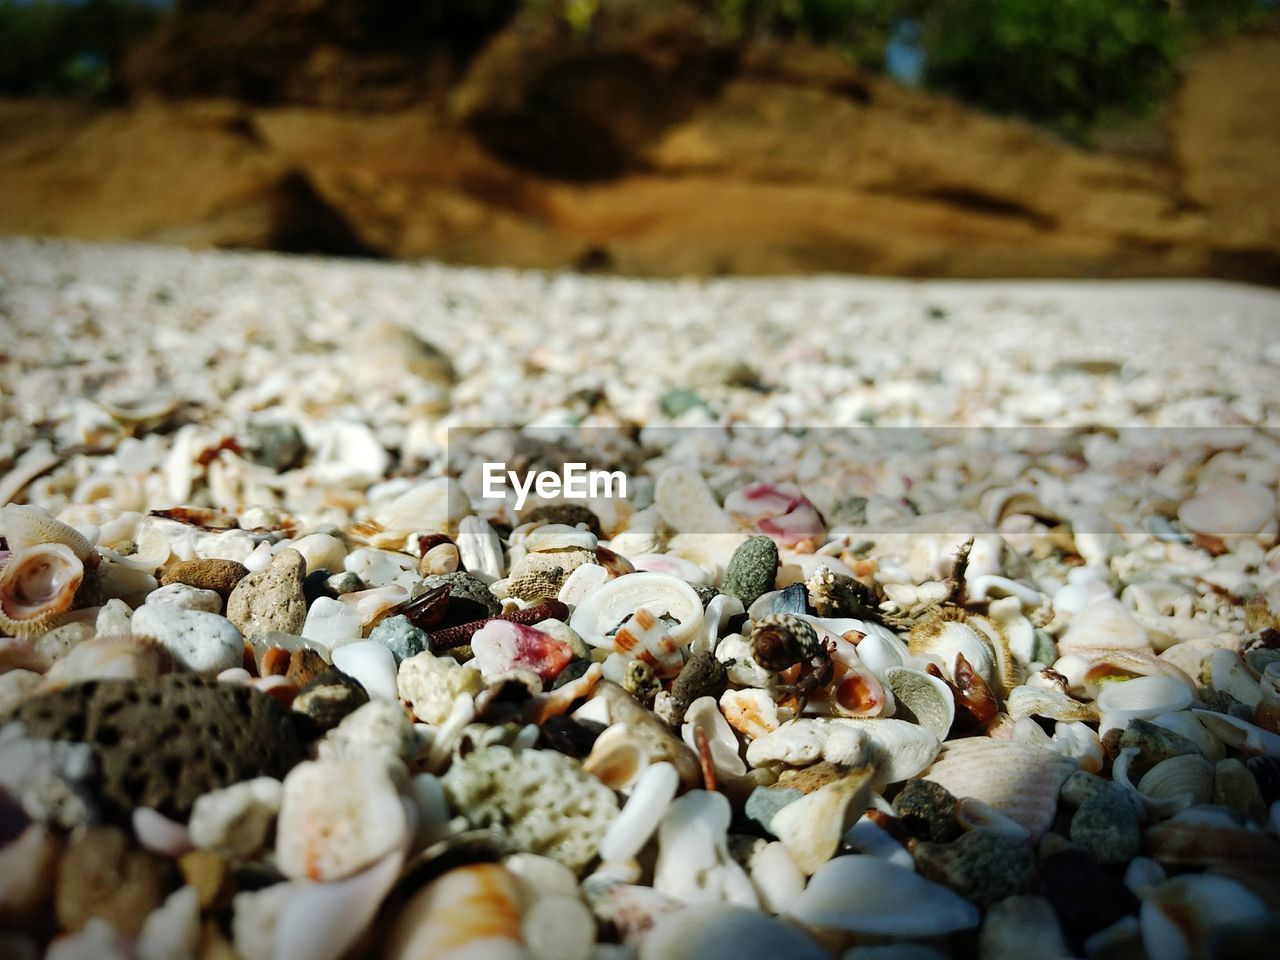 SURFACE LEVEL OF SHELLS ON BEACH